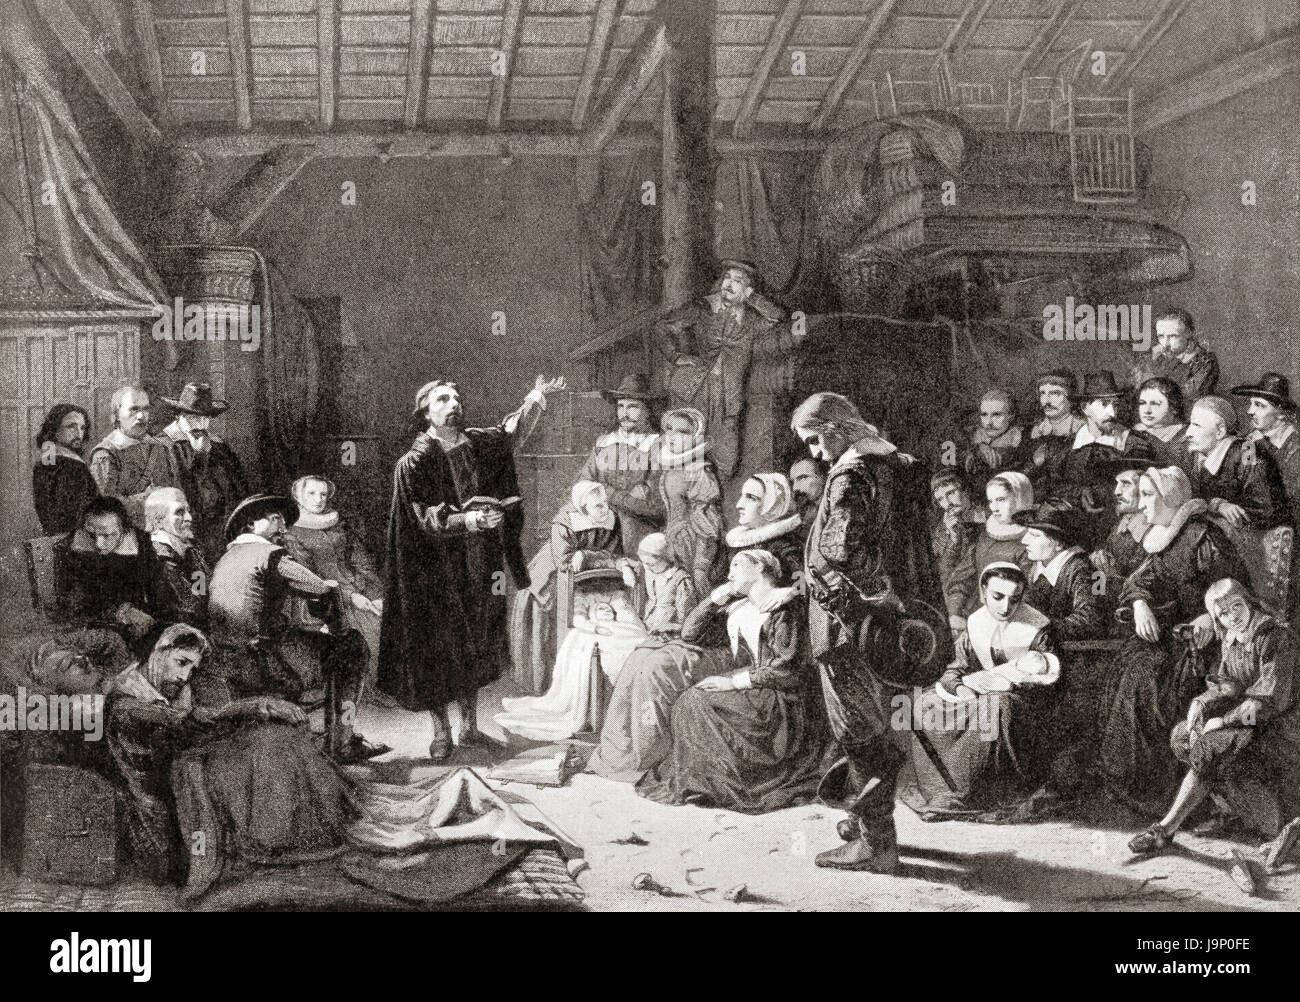 The first meeting of the Pilgrim Fathers, 17th century.  From Hutchinson's History of the Nations, published - Stock Image